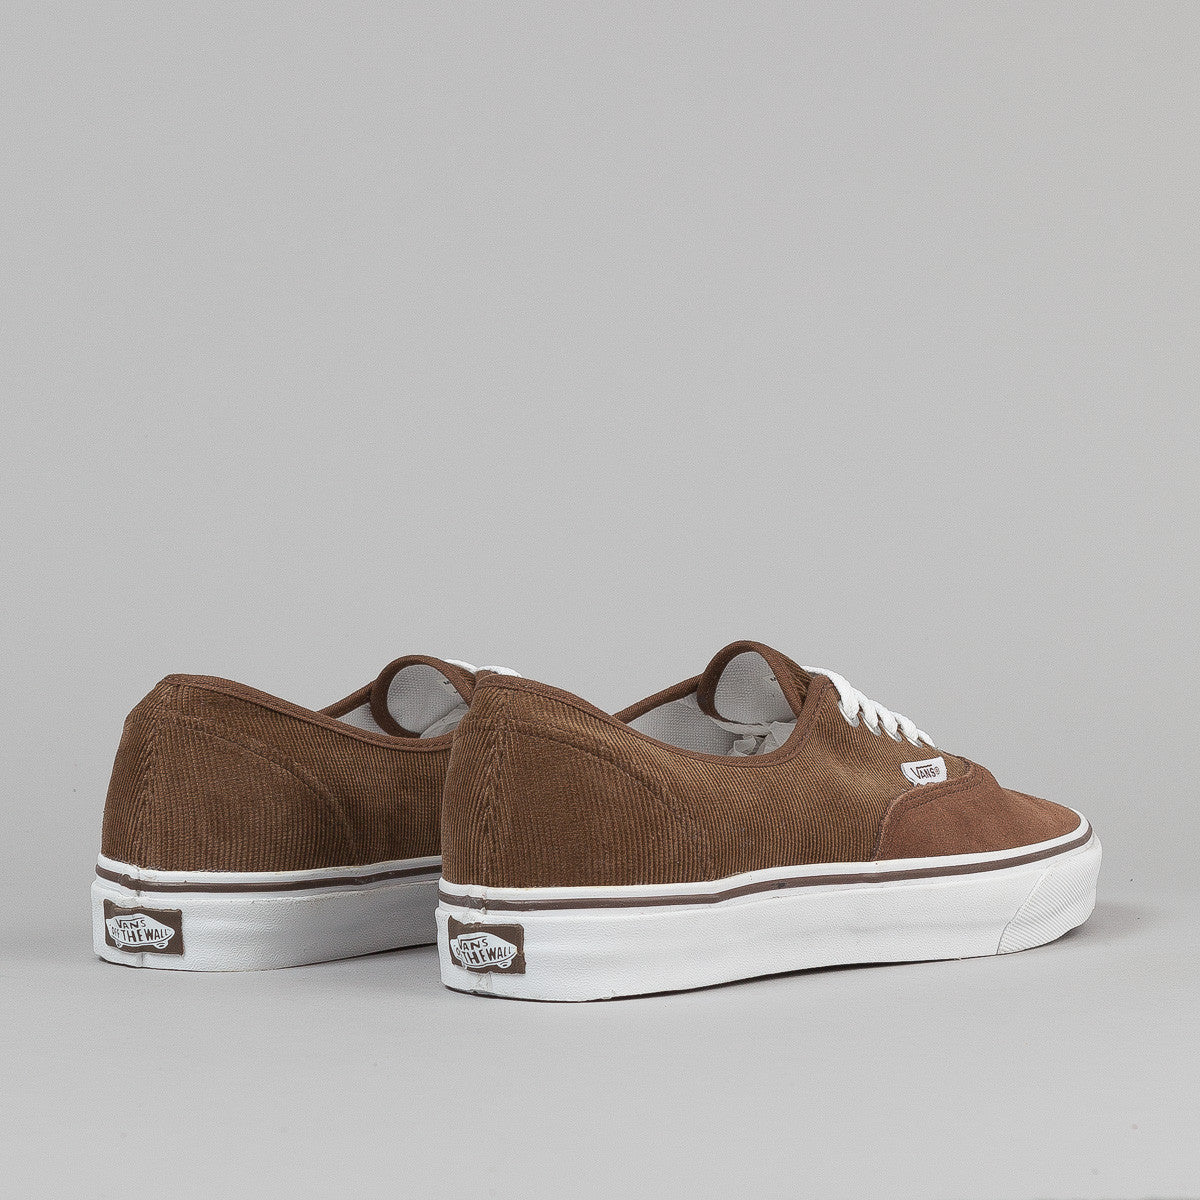 Vans Era Shoes - (Suede / Corduroy) Dark Earth / True White